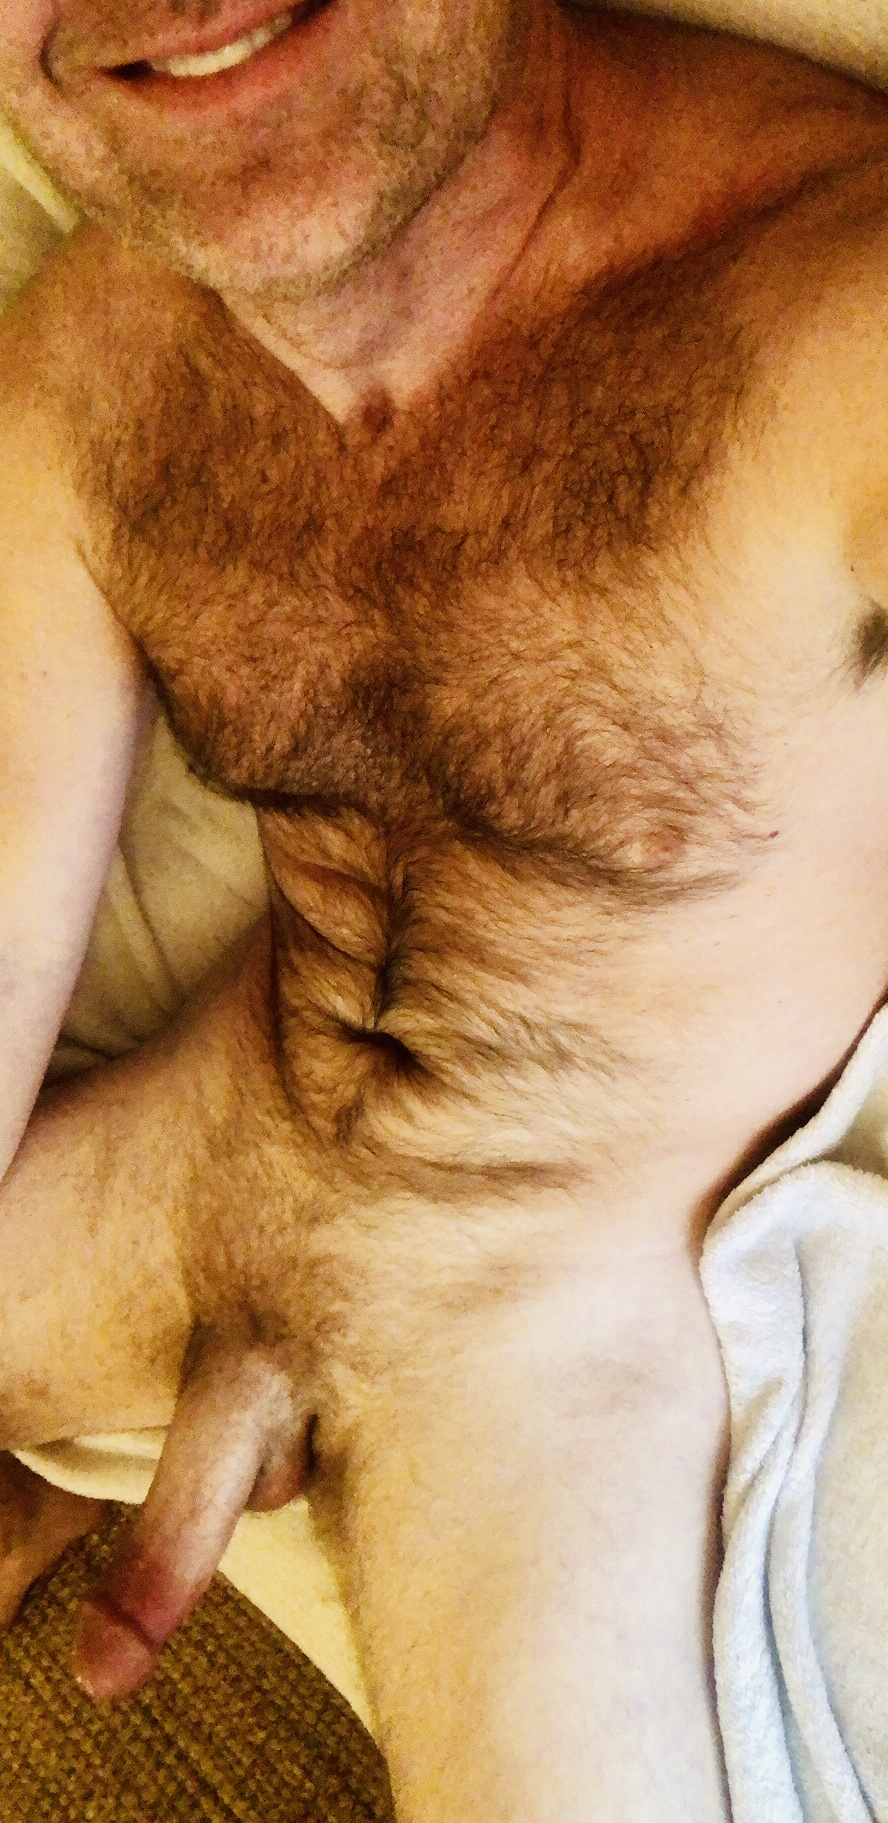 (40) Clothes off till Monday, whose with me? PM\'s welcome.   Daddy/Mature  Porn XXX   Hot XXX Gays